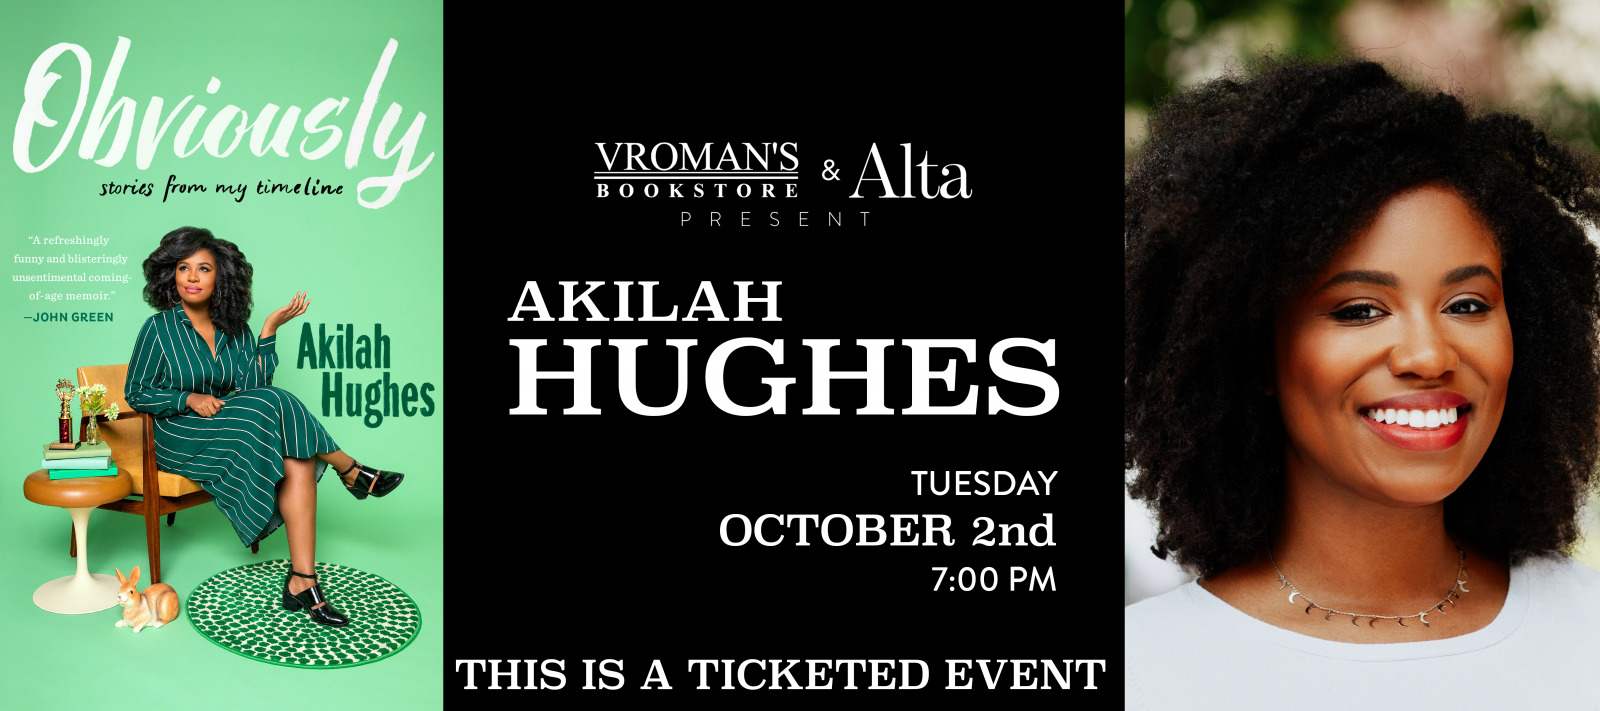 book signing with Akilah Hughes on Tuesday October 2nd at 7pm